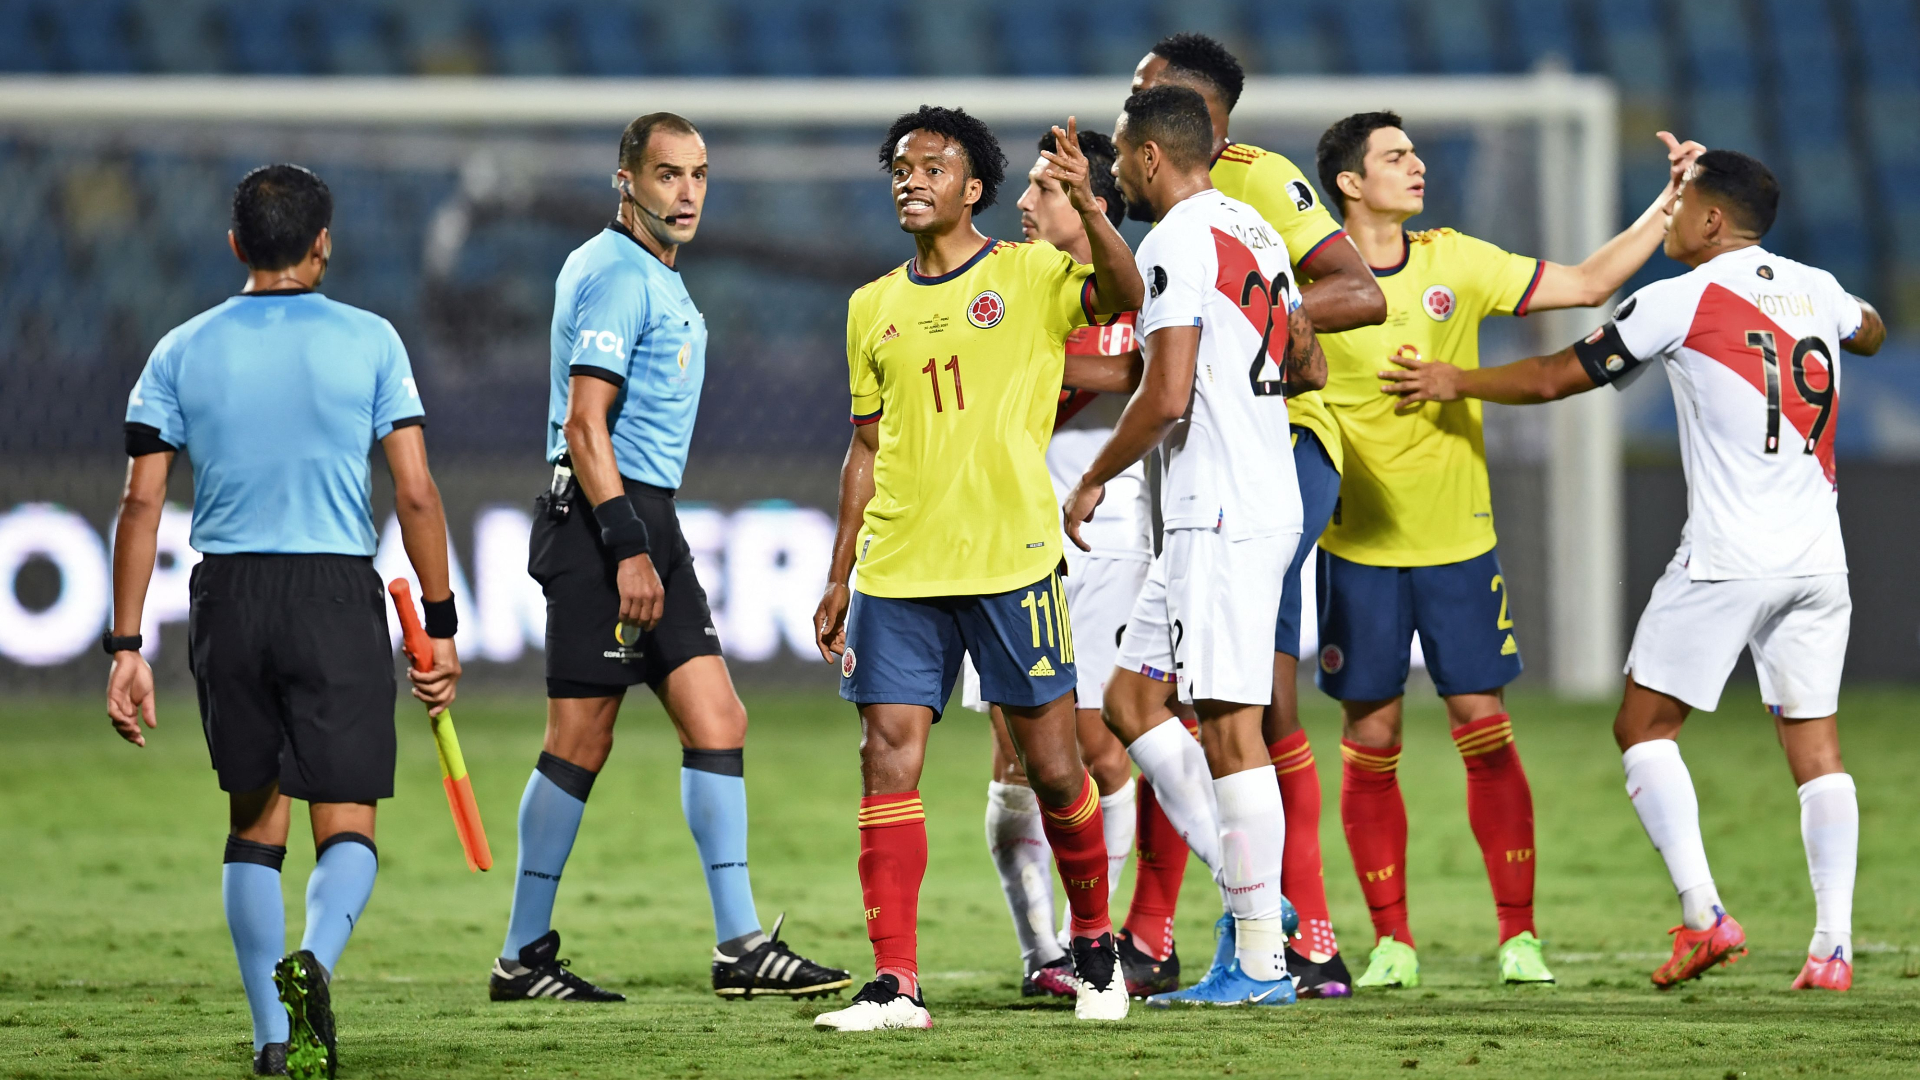 How to watch Brazil vs Colombia in the Copa America 2021 from India?